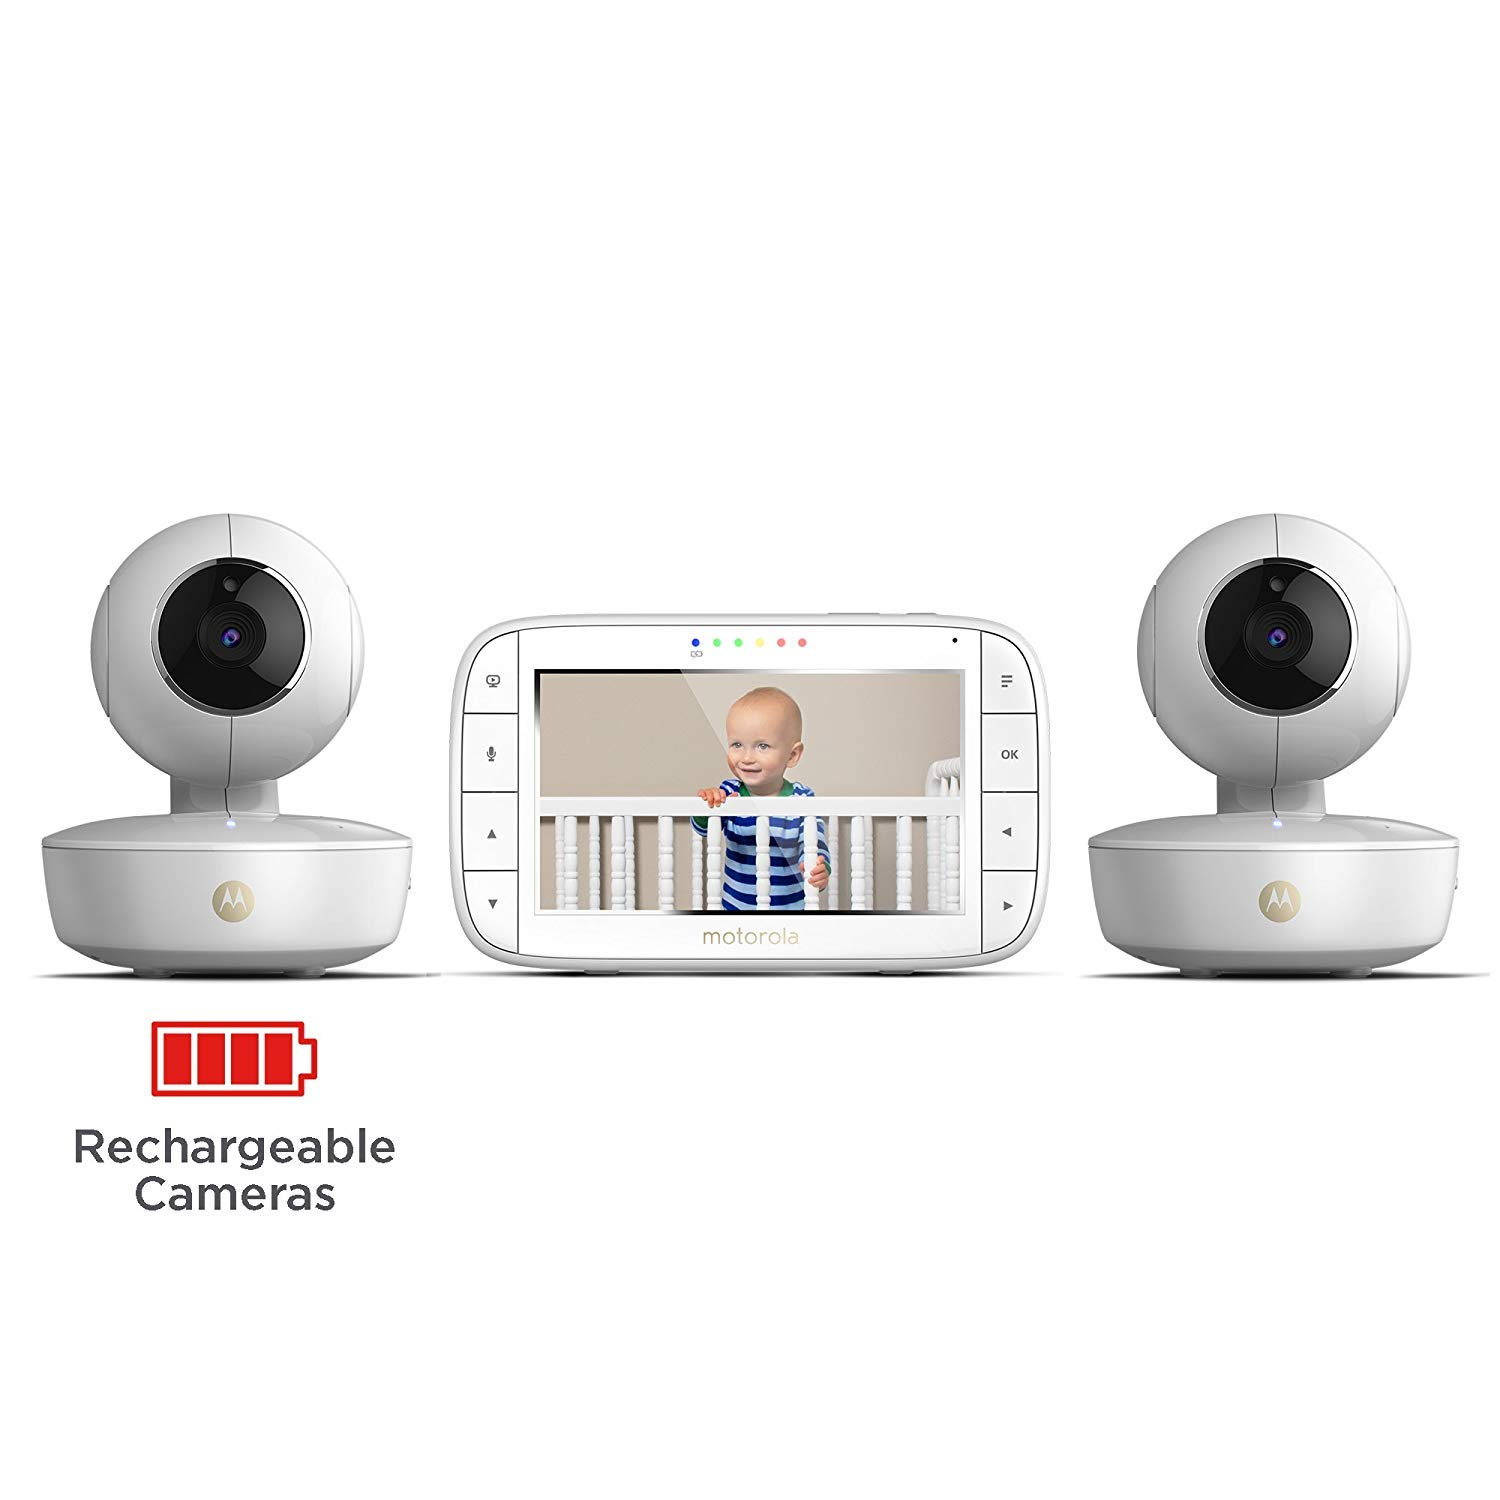 Motorola MBP36XL-2 Portable Video Baby Monitor, 5-inch Color Screen, 2 Rechargeable Cameras with Remote Pan, Tilt, and Zoom, Two-Way Audio, and Room Temperature Display by Motorola Baby (Image #4)